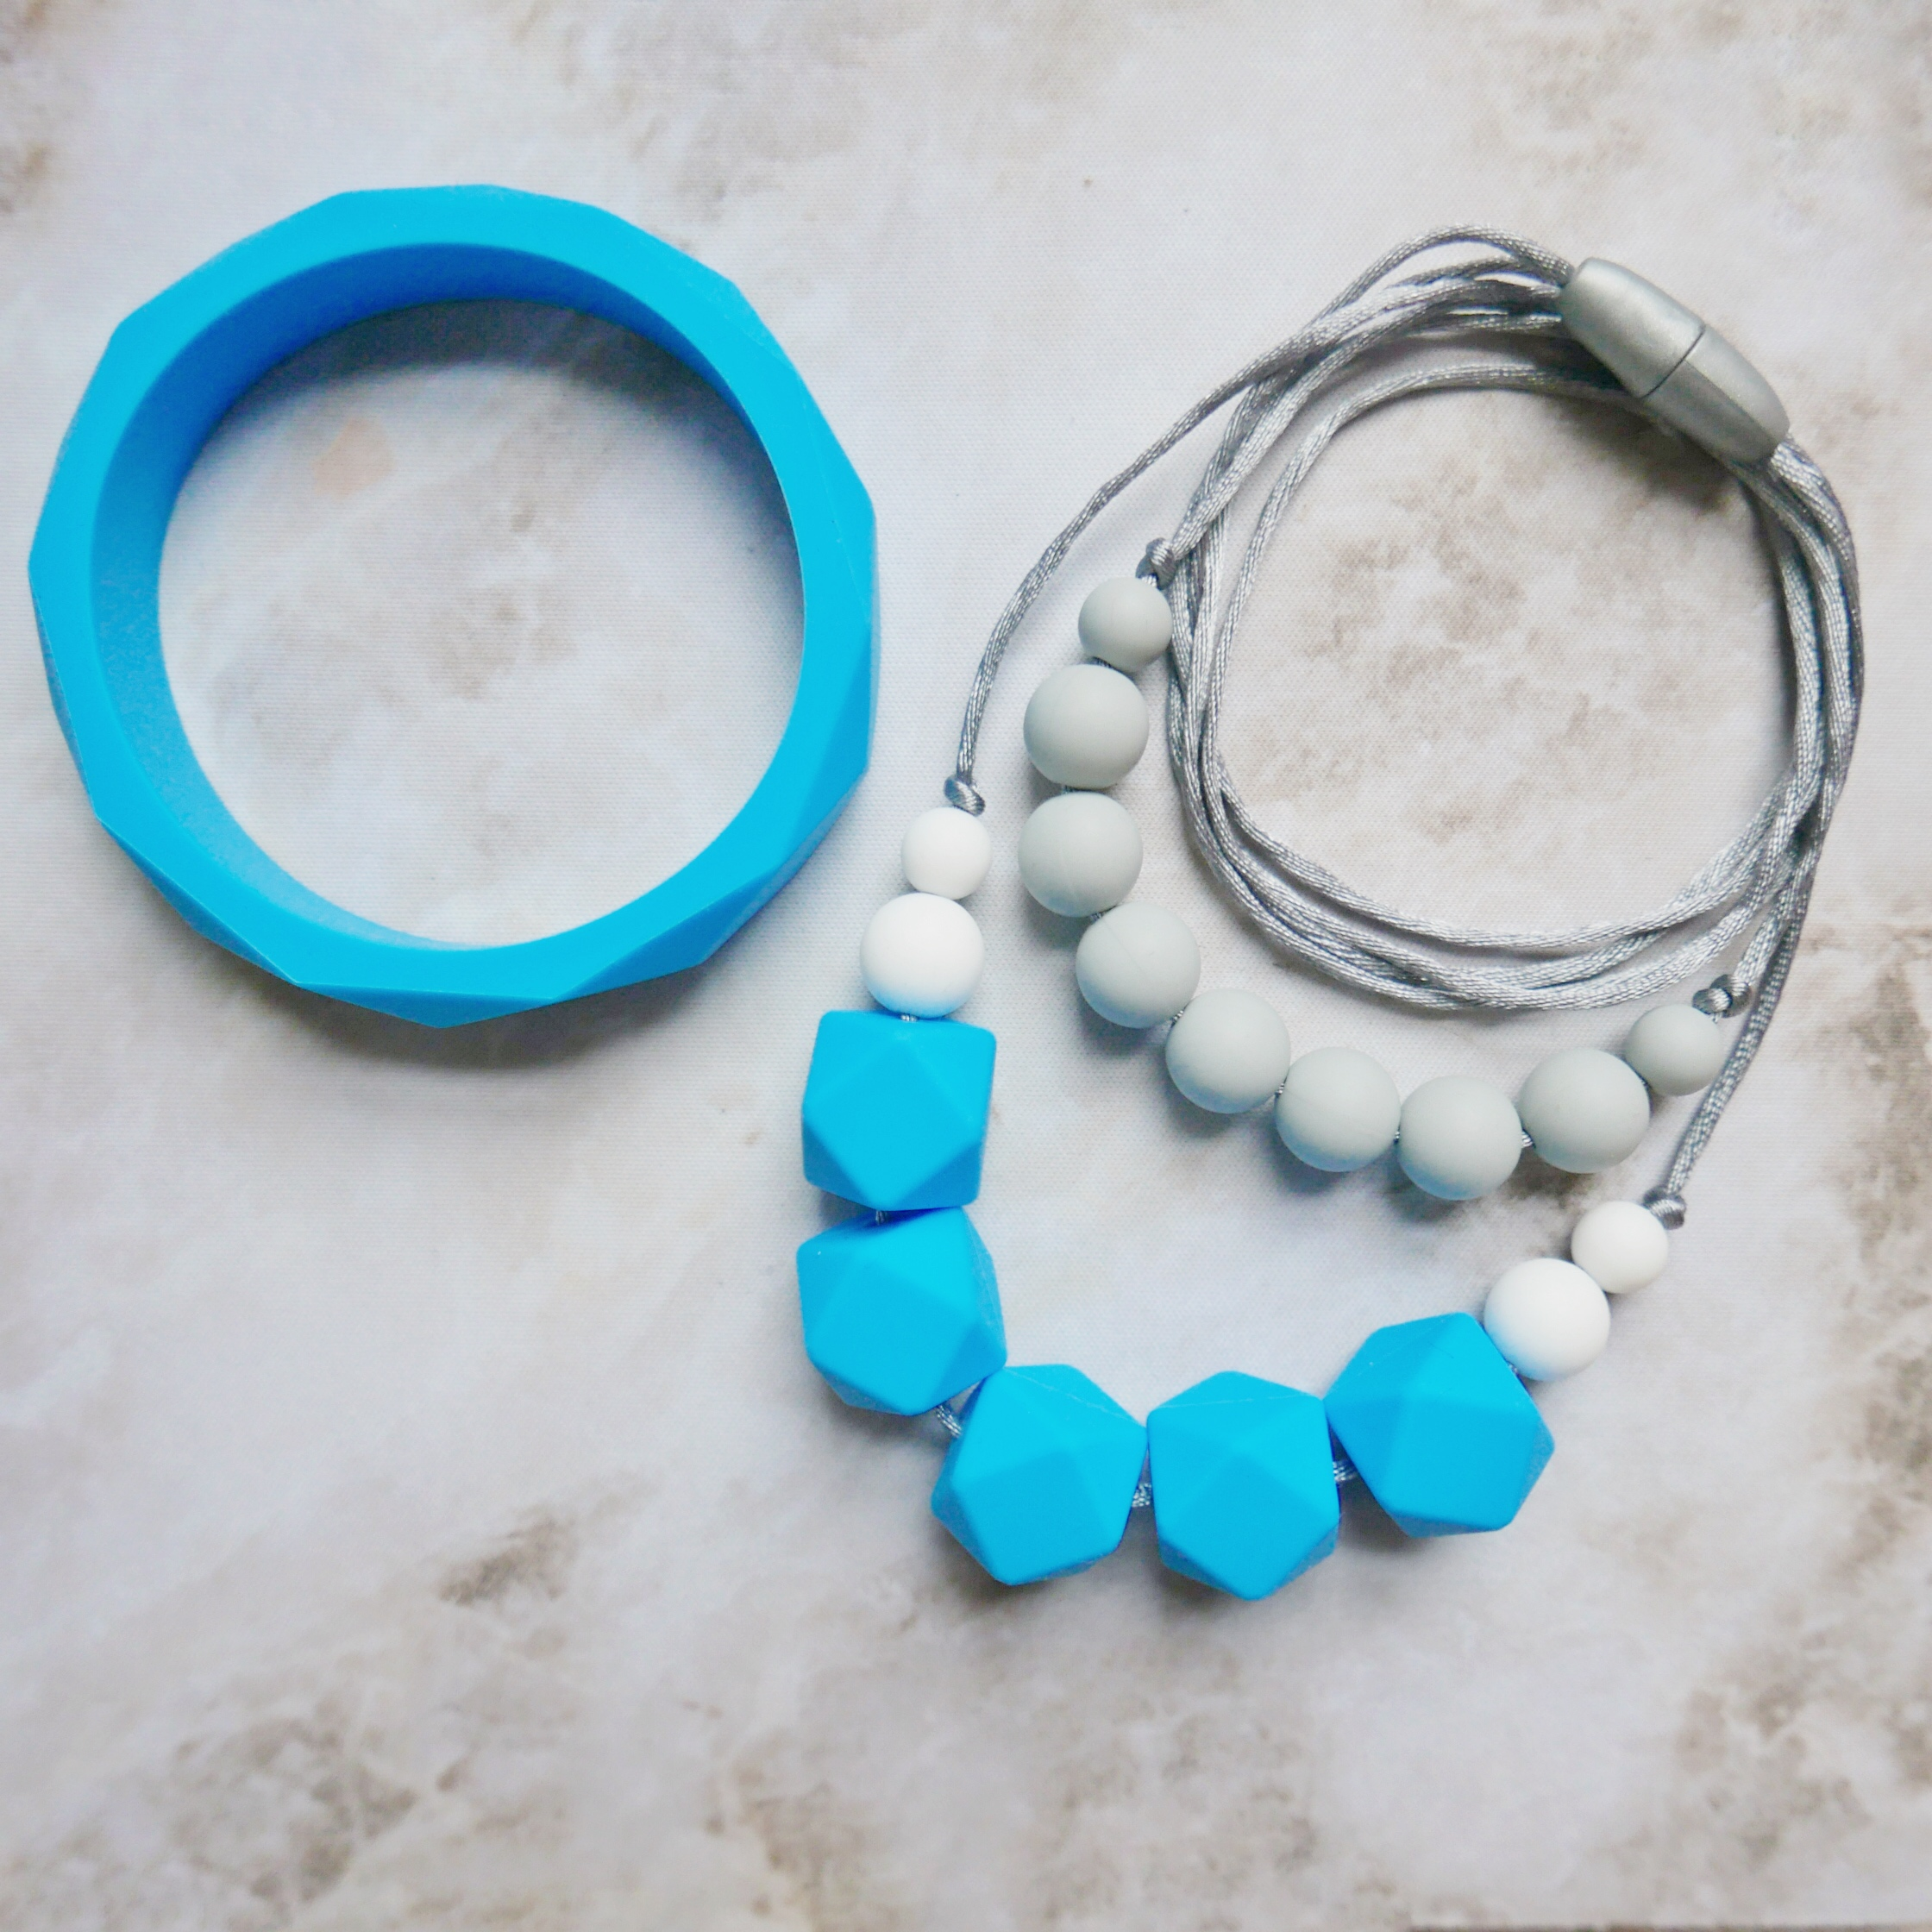 East London Baby Company teething necklace and bangle in blue and grey